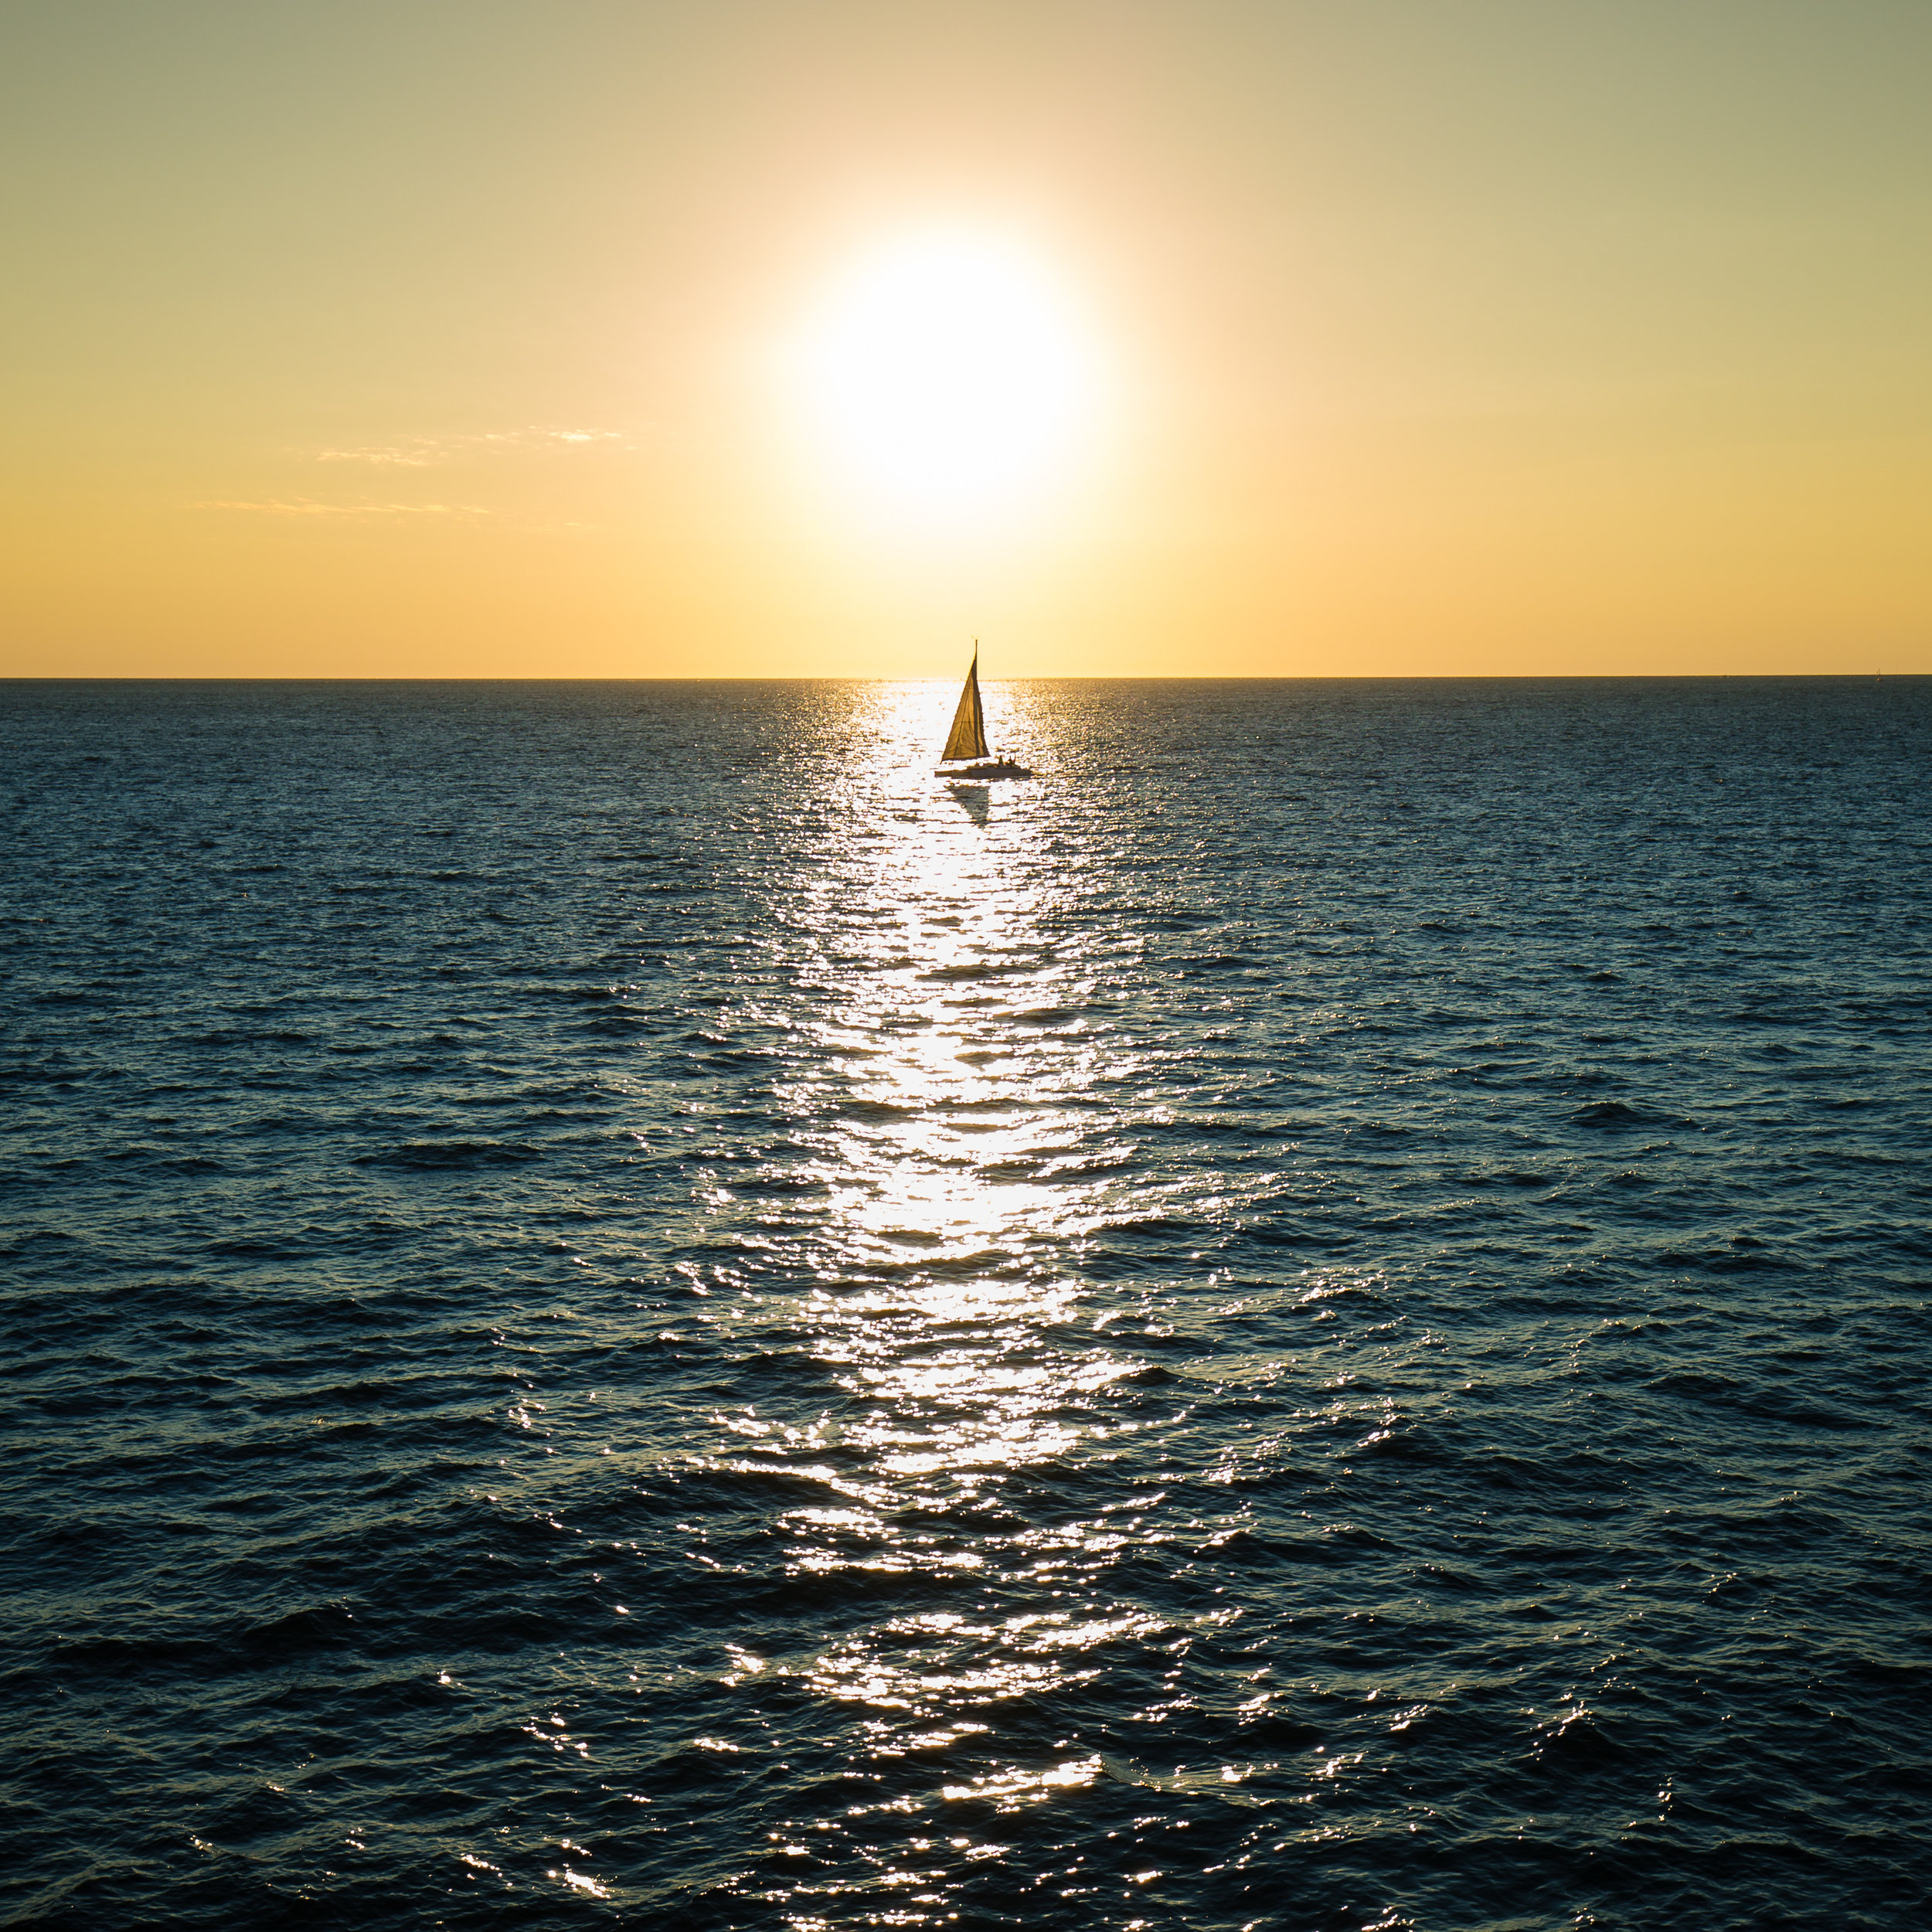 A lone sail boat crosses the early morning sun.